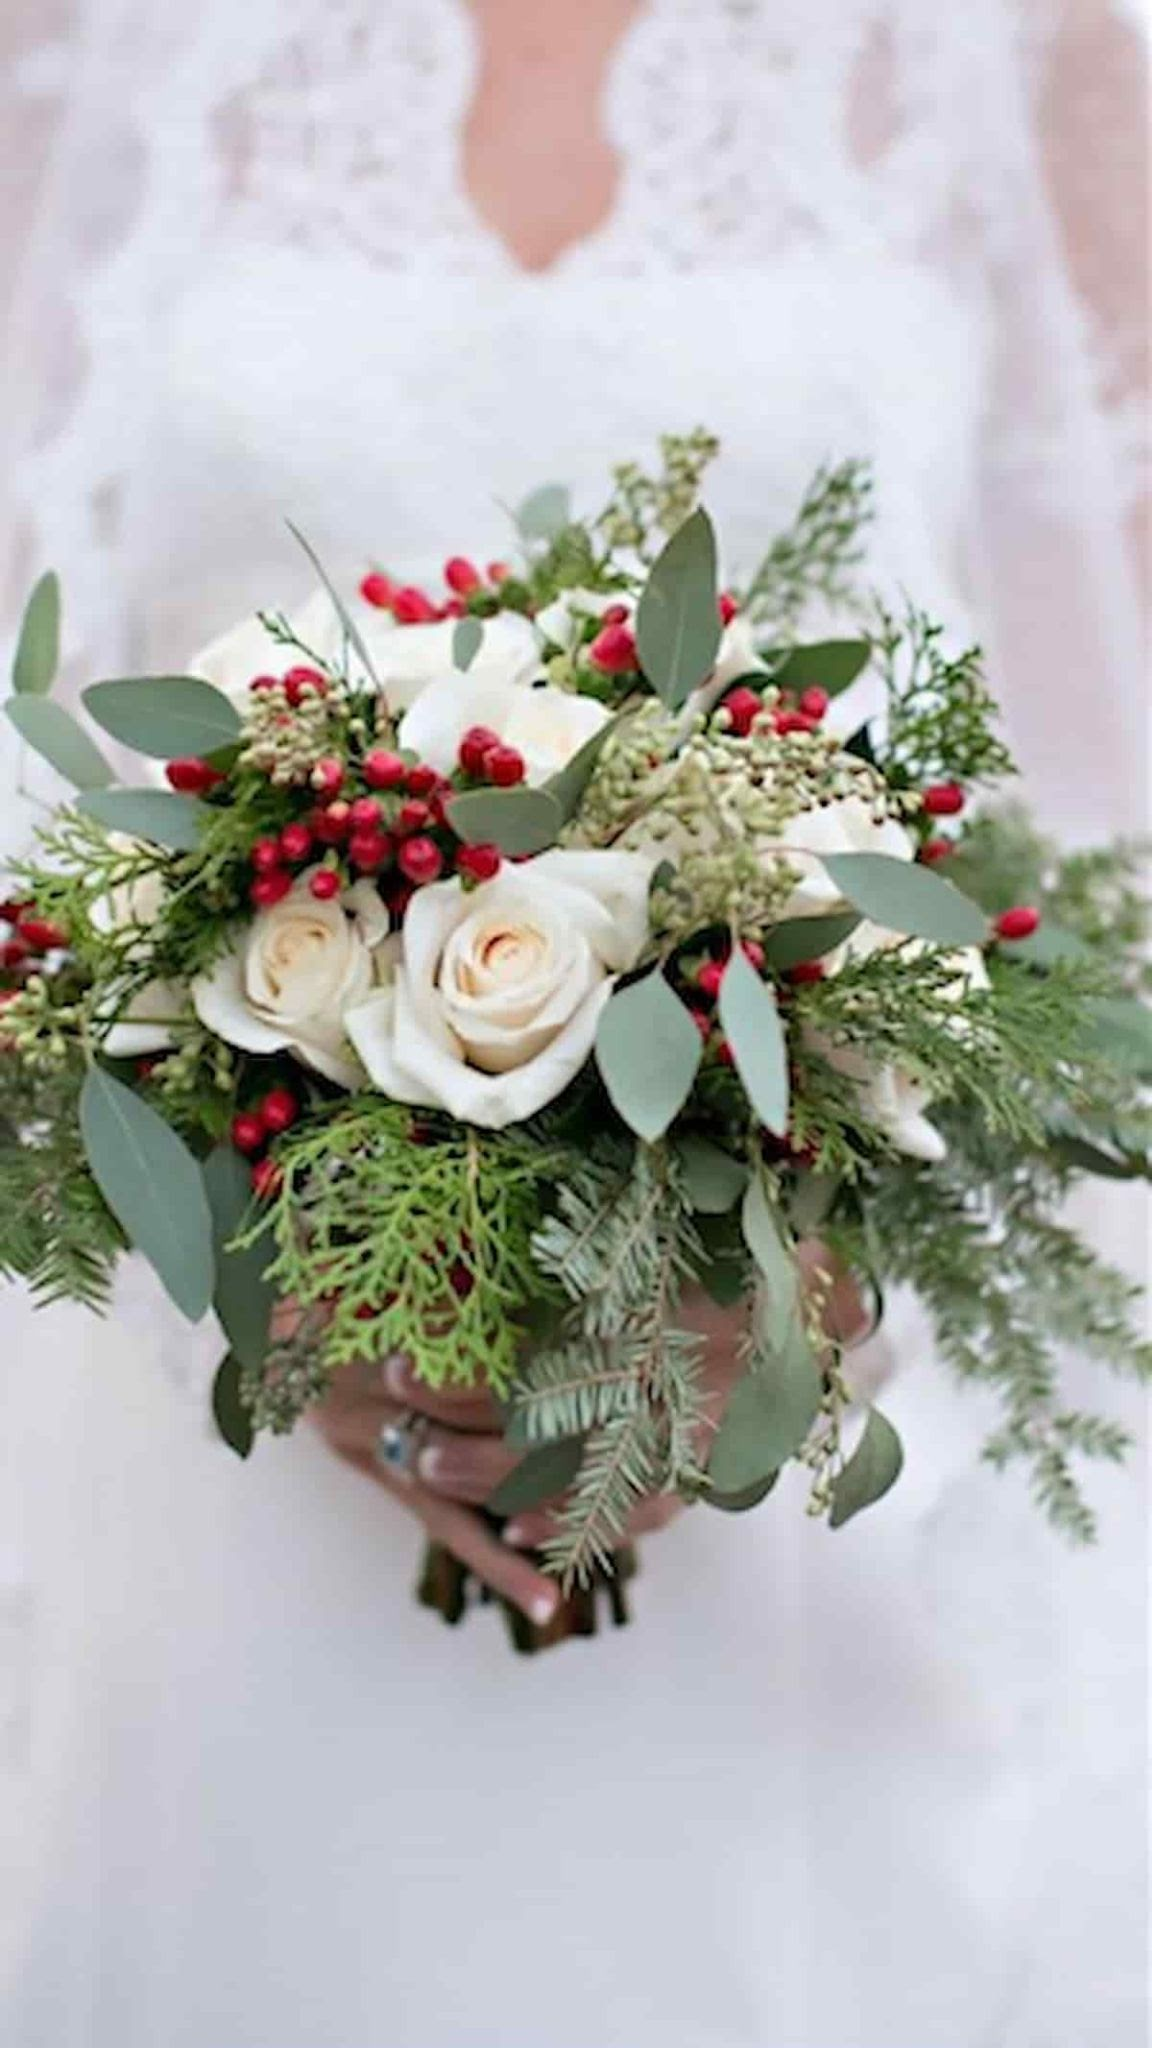 A Christmas bridal bouquet uses holly berries and silver leaves